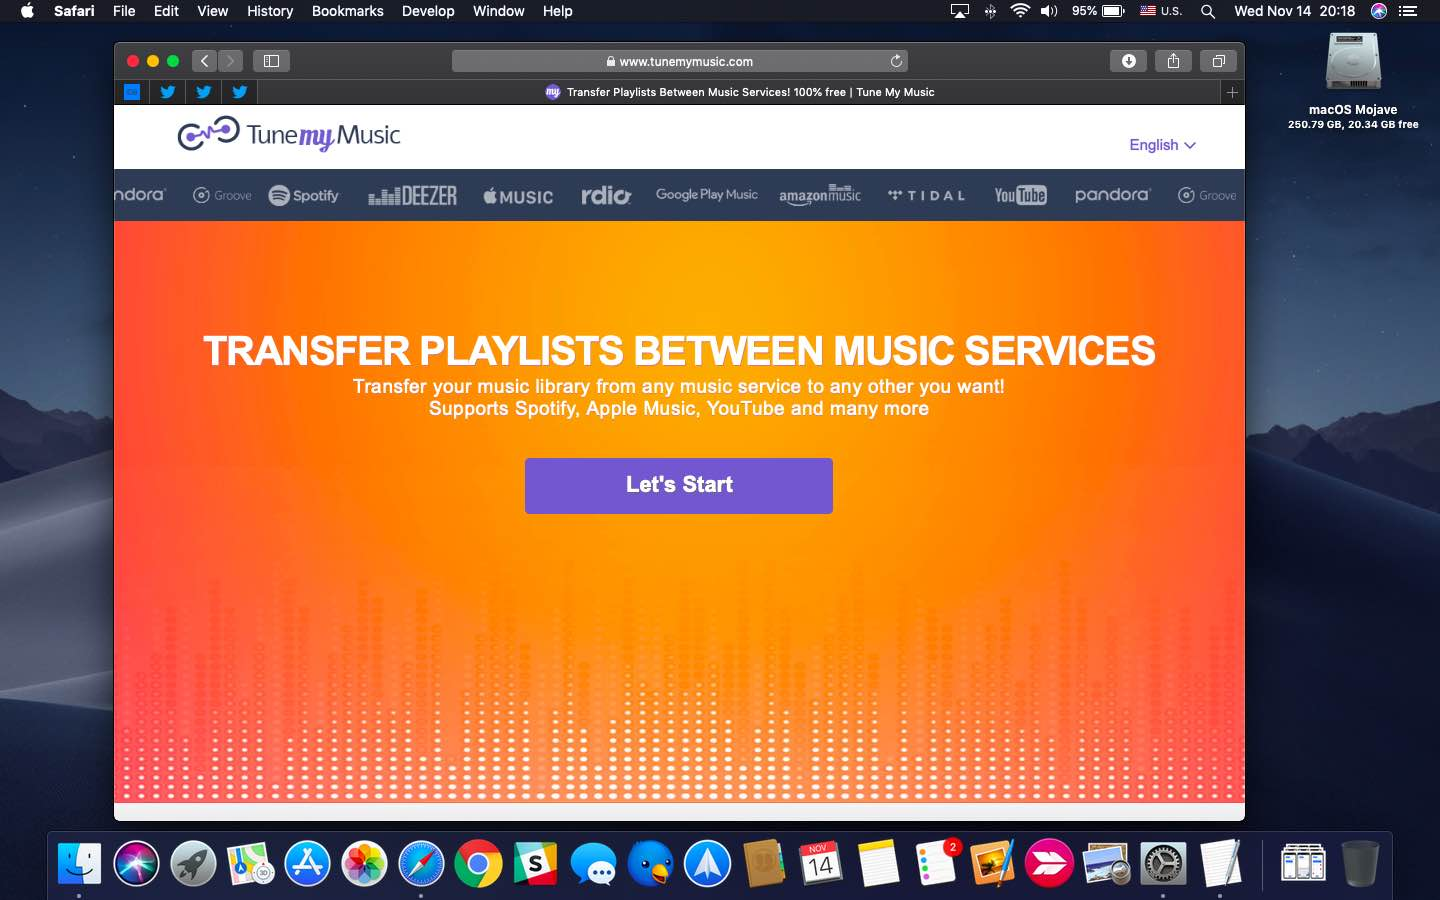 How to transfer playlists between popular music services